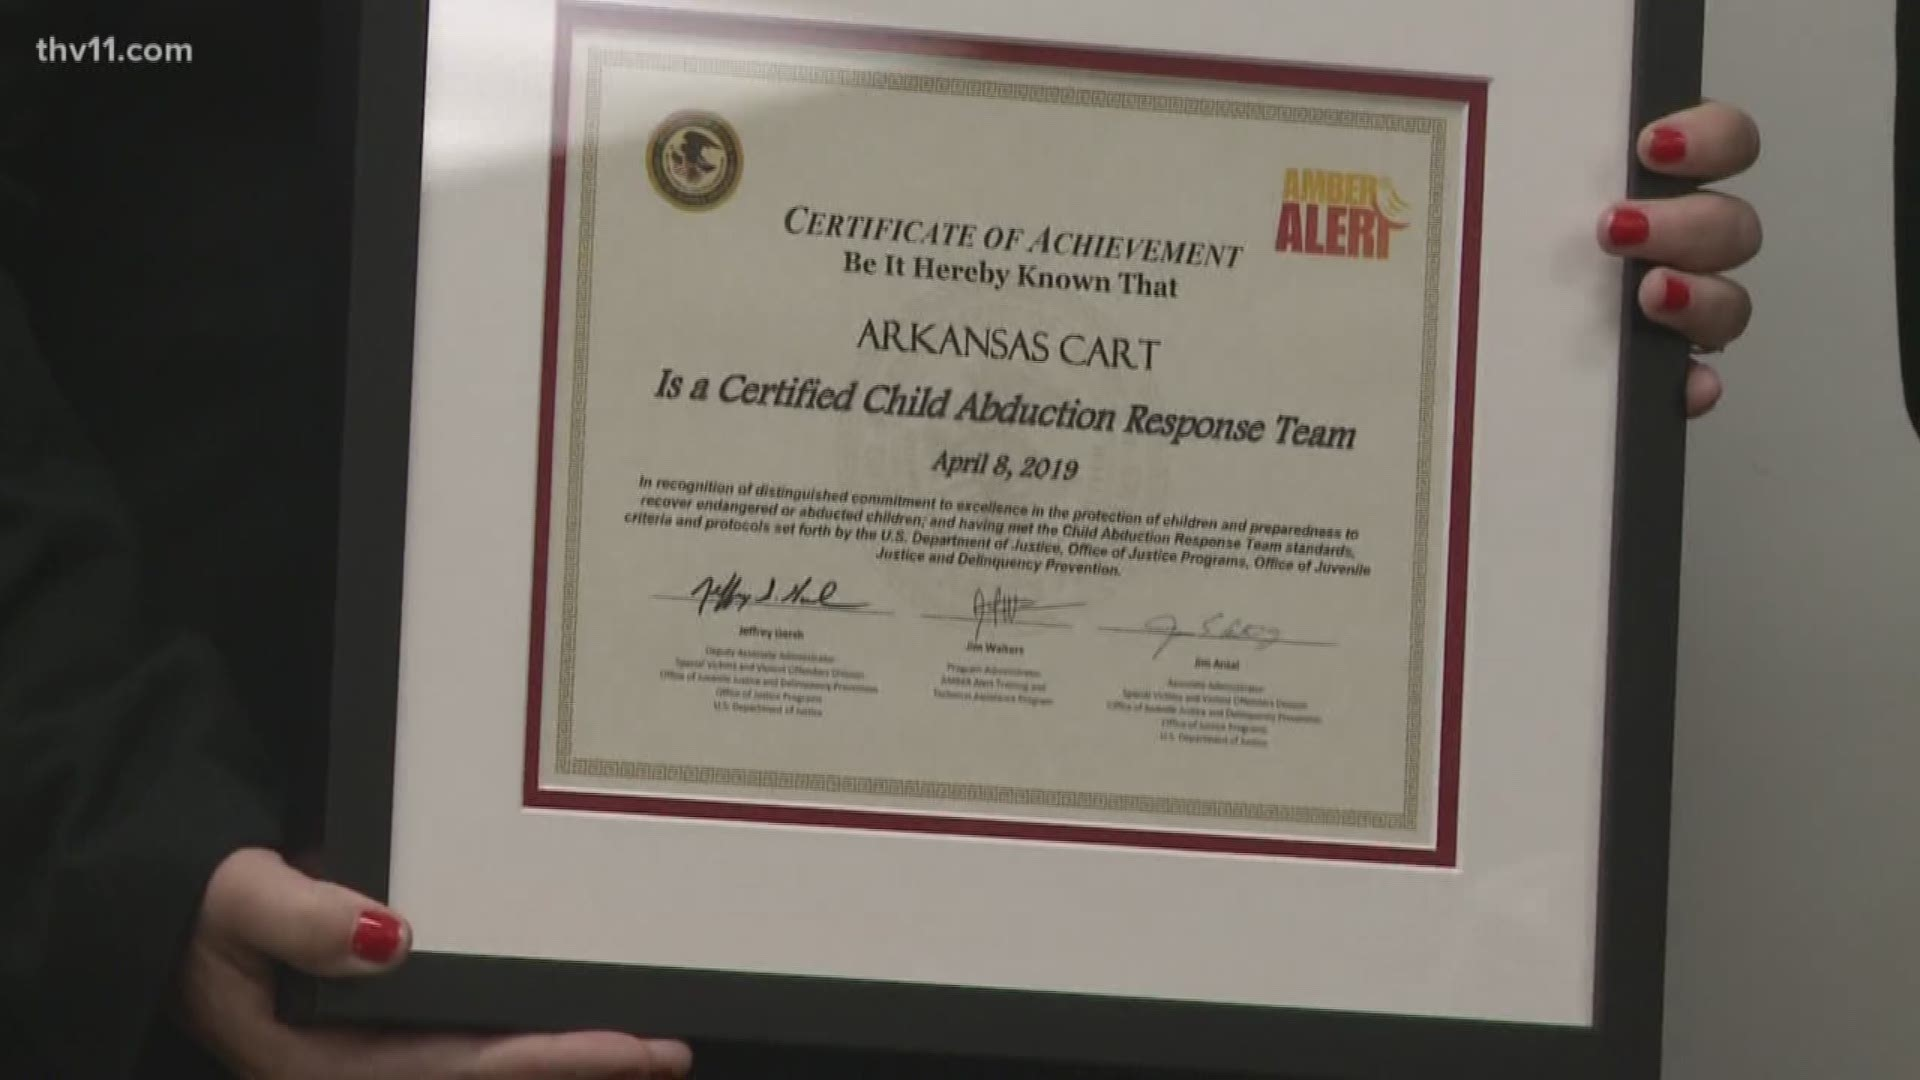 Arkansas Becomes First And Only State To Have Certified Child Abduction Teams Across State Thv11 Com